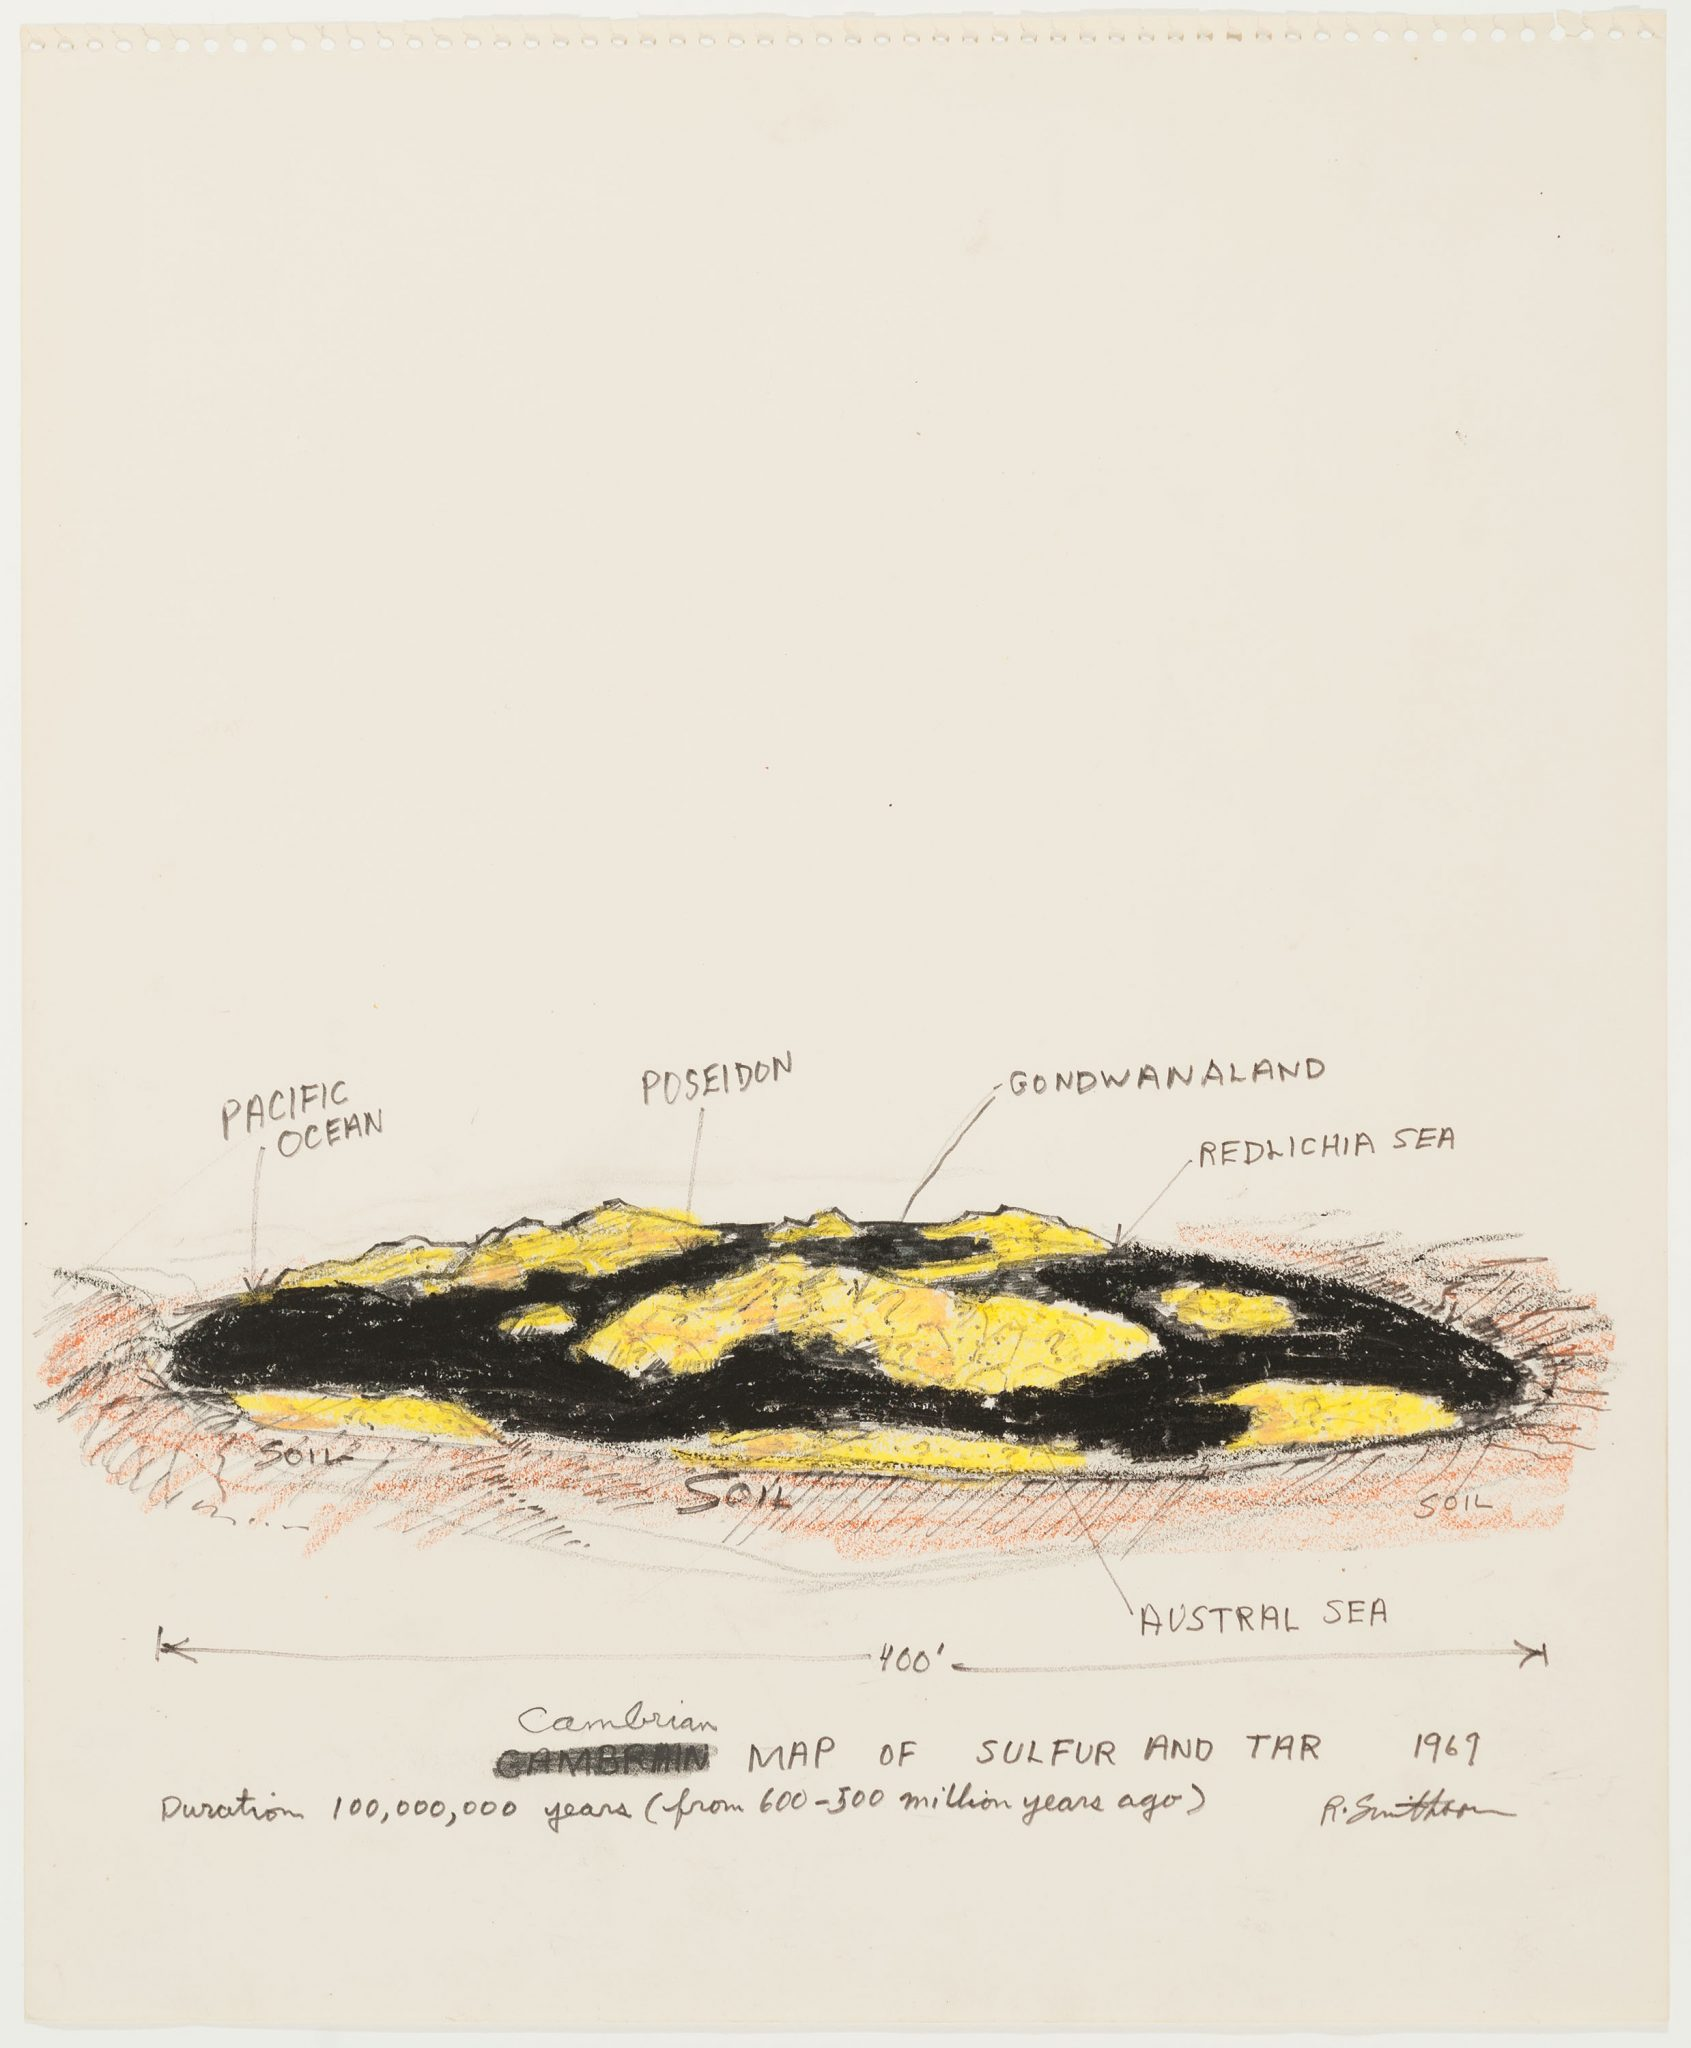 Robert Smithson, Cambrian Map of Sulfur and Tar, 1969. Crayon and marking pen on paper, 17 × 14 in. (43.2 × 35.6 cm). The Menil Collection, Houston, Gift of the artist. © Holt / Smithson Foundation / VAGA at Artists Rights Society (ARS), NY. Photo: Paul Hester